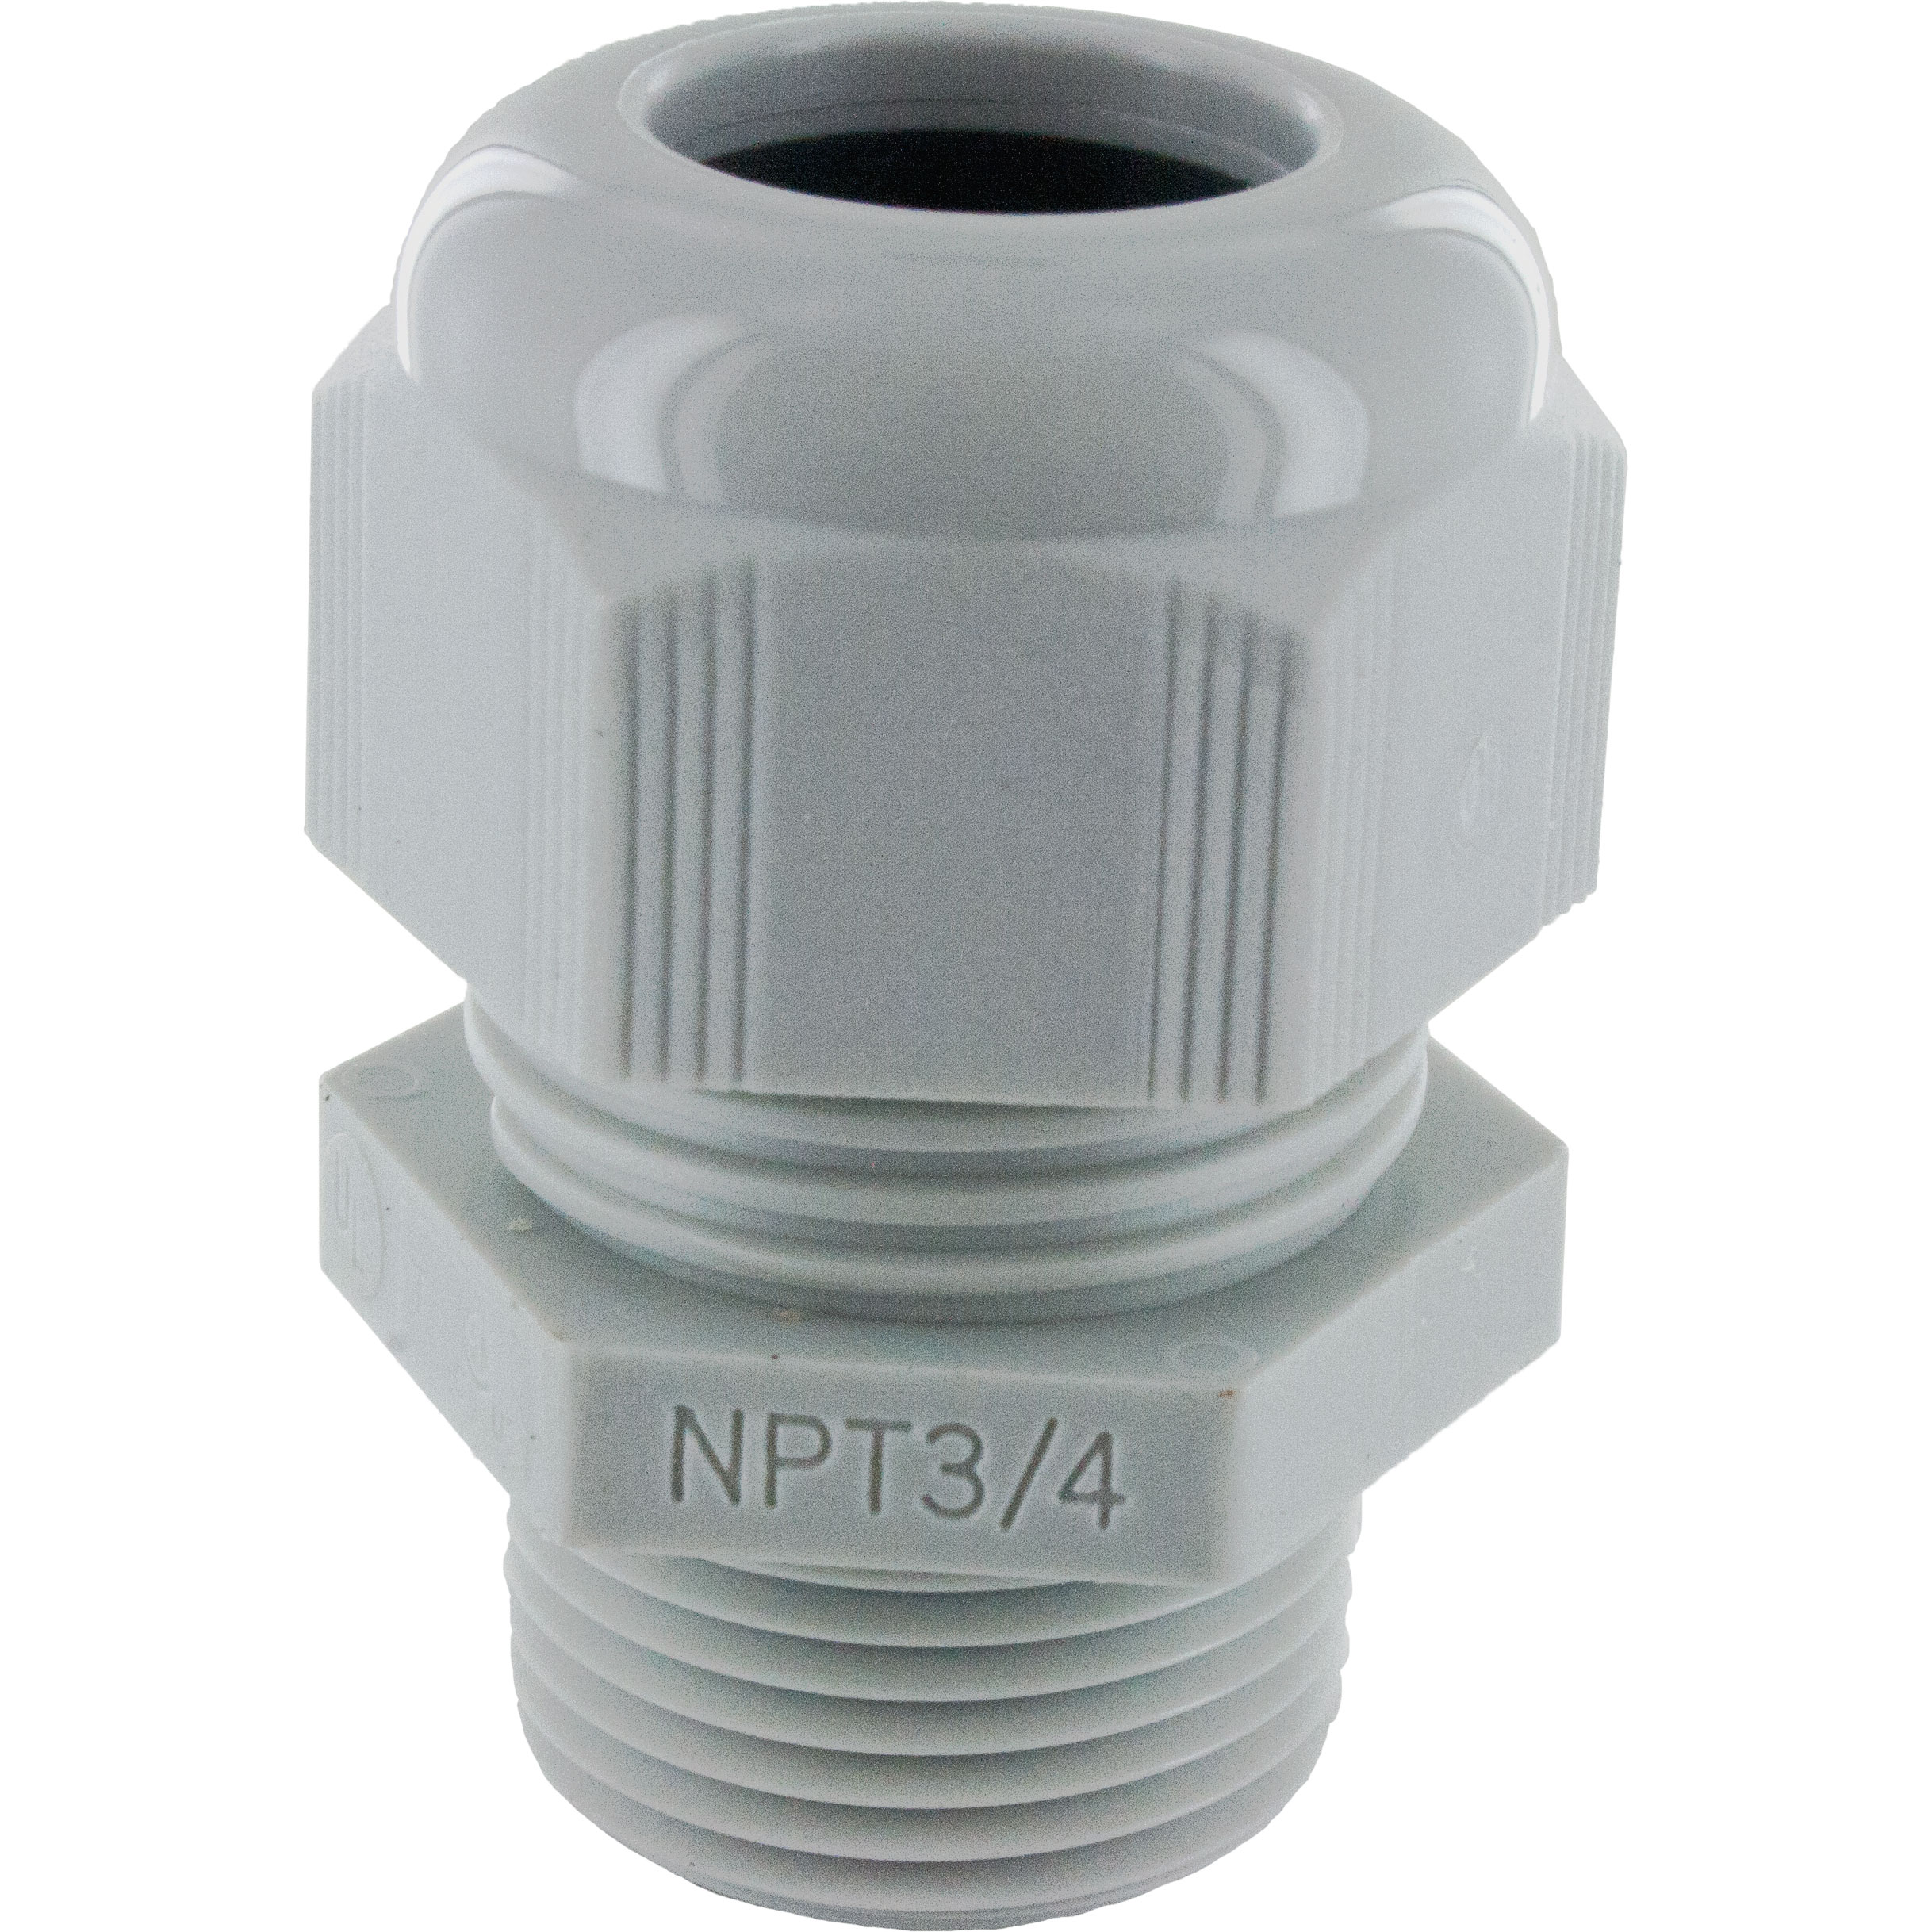 Nylon Dome Cap Cable Gland 3 4 Npt 51 71 Gray Elecdirect And Parts Wiring Switches Toggle Switch 20 Amp 35 Pollak